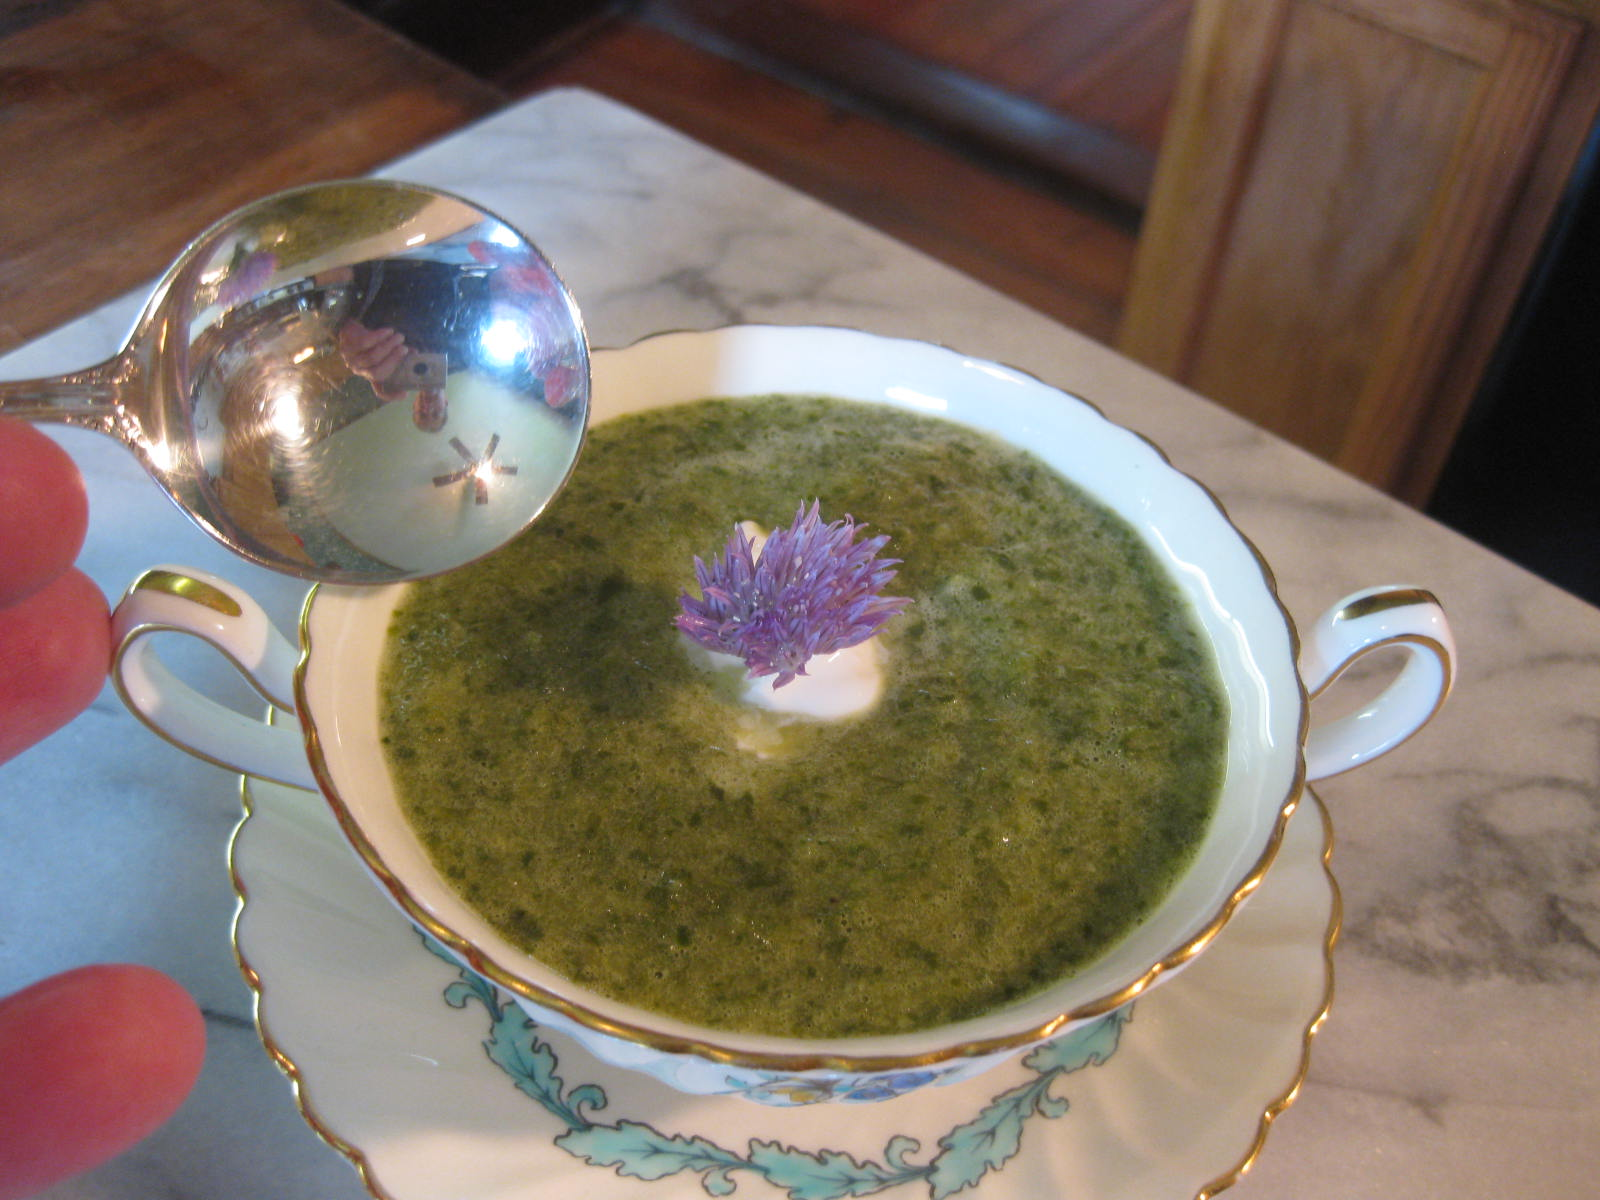 Recipe: Lettuce & Lovage Soup